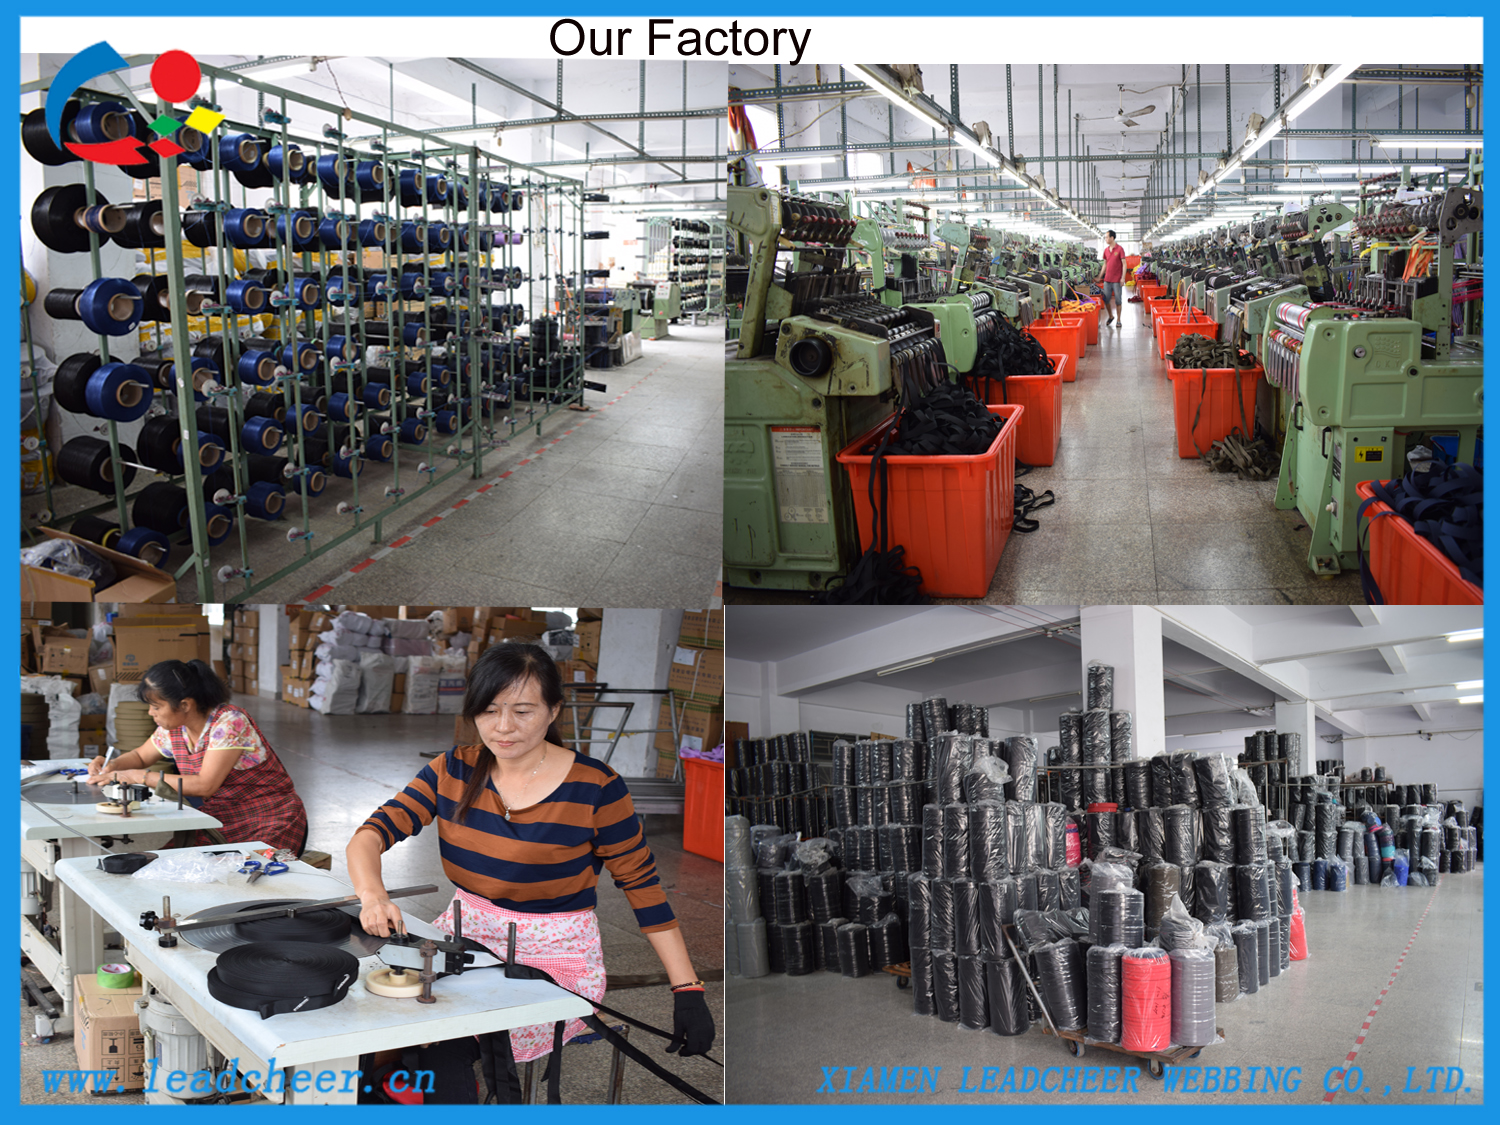 1 Our Factory.jpg